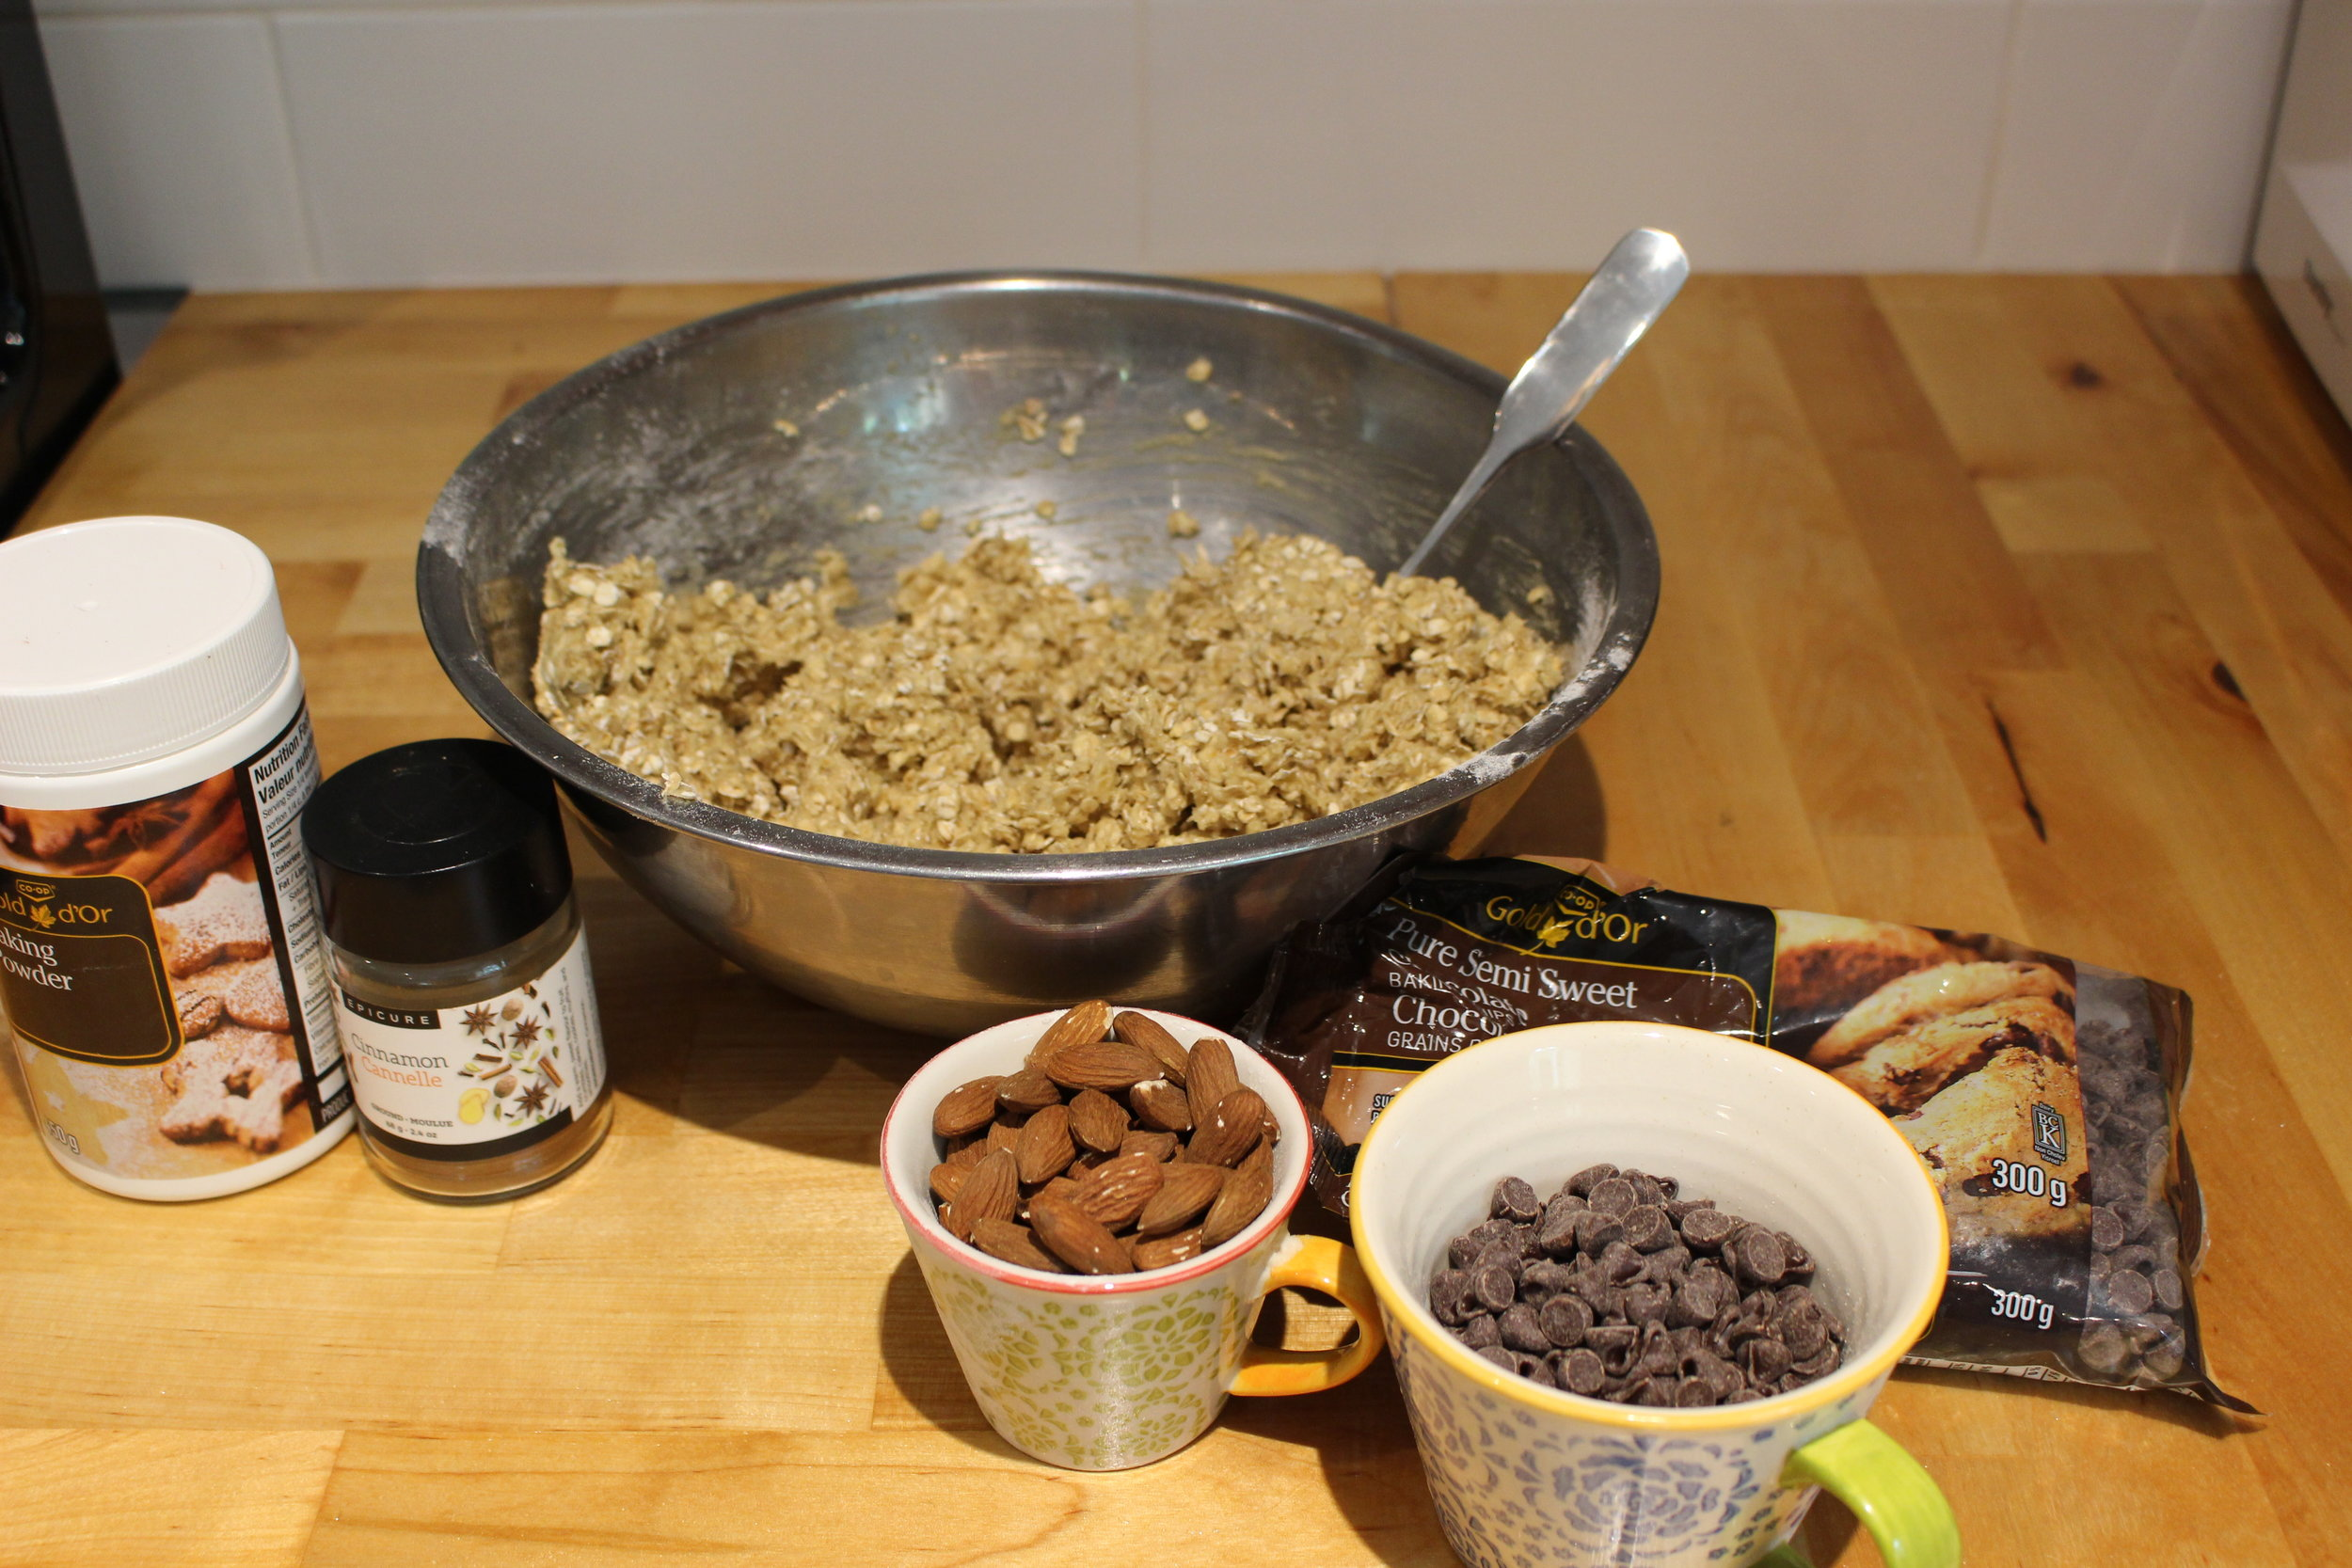 Mixing it all together and adding the almonds and chocolate chips